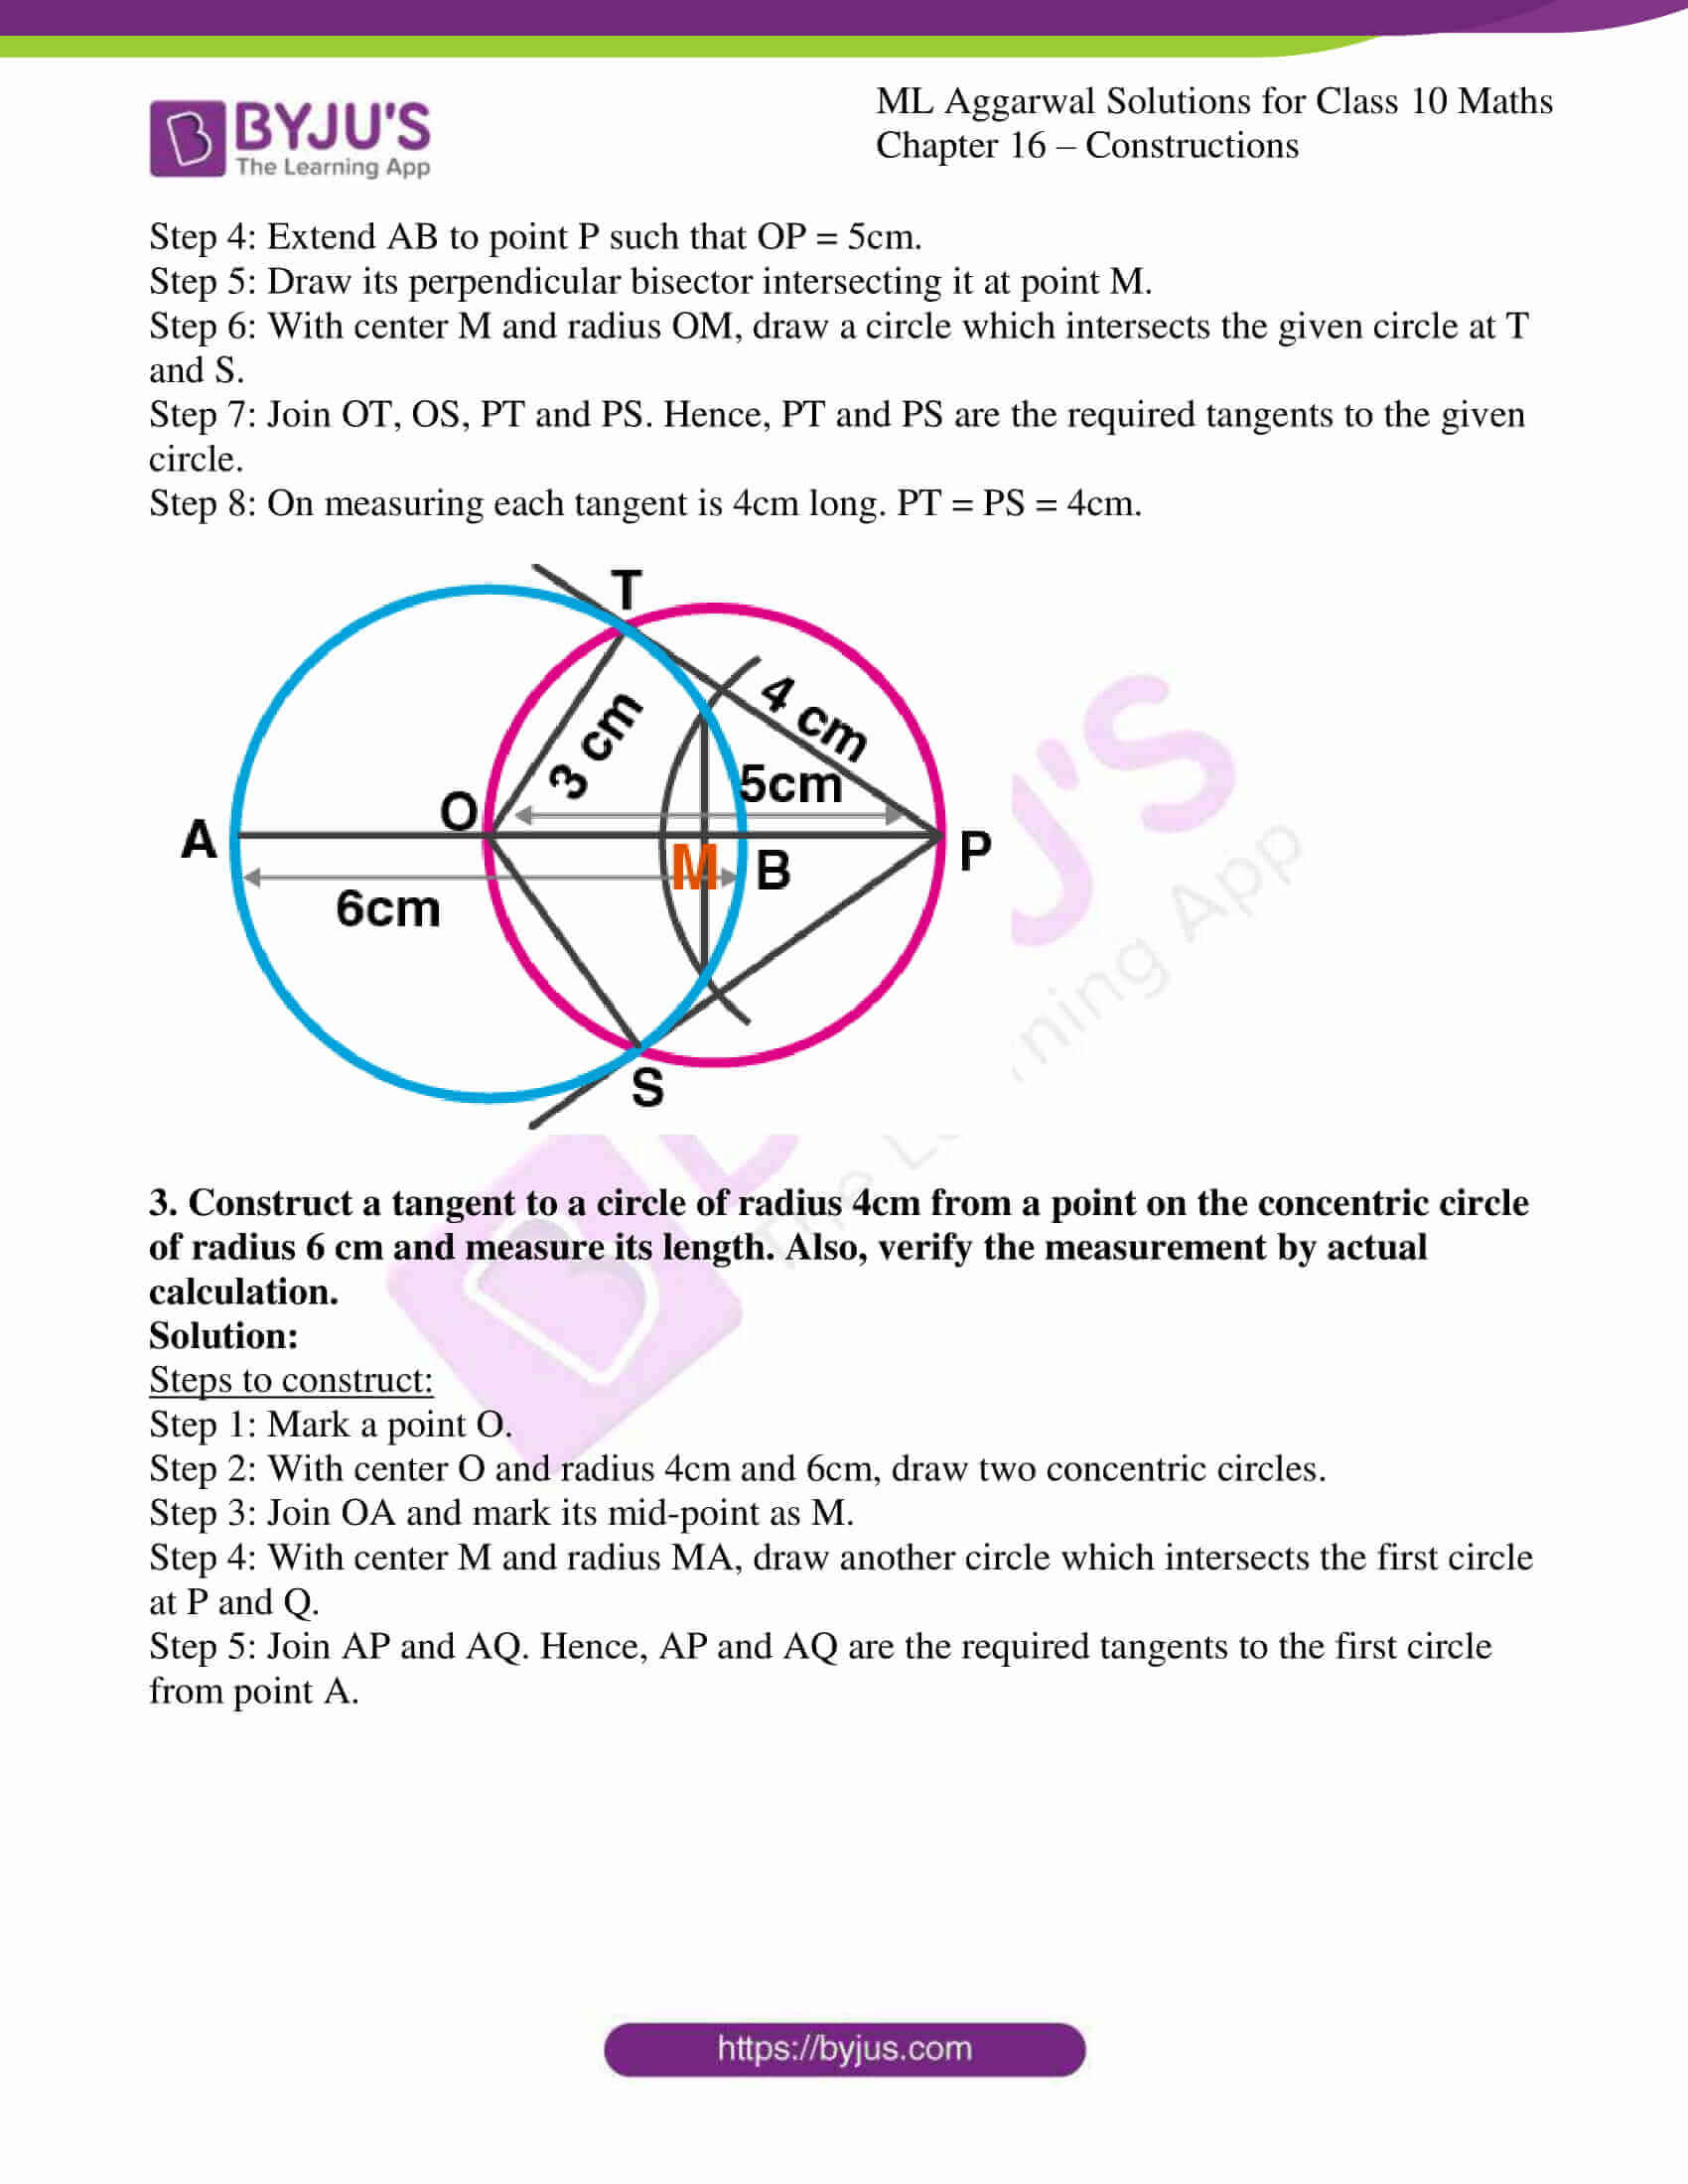 ml aggarwal solutions class 10 maths chapter 16 02